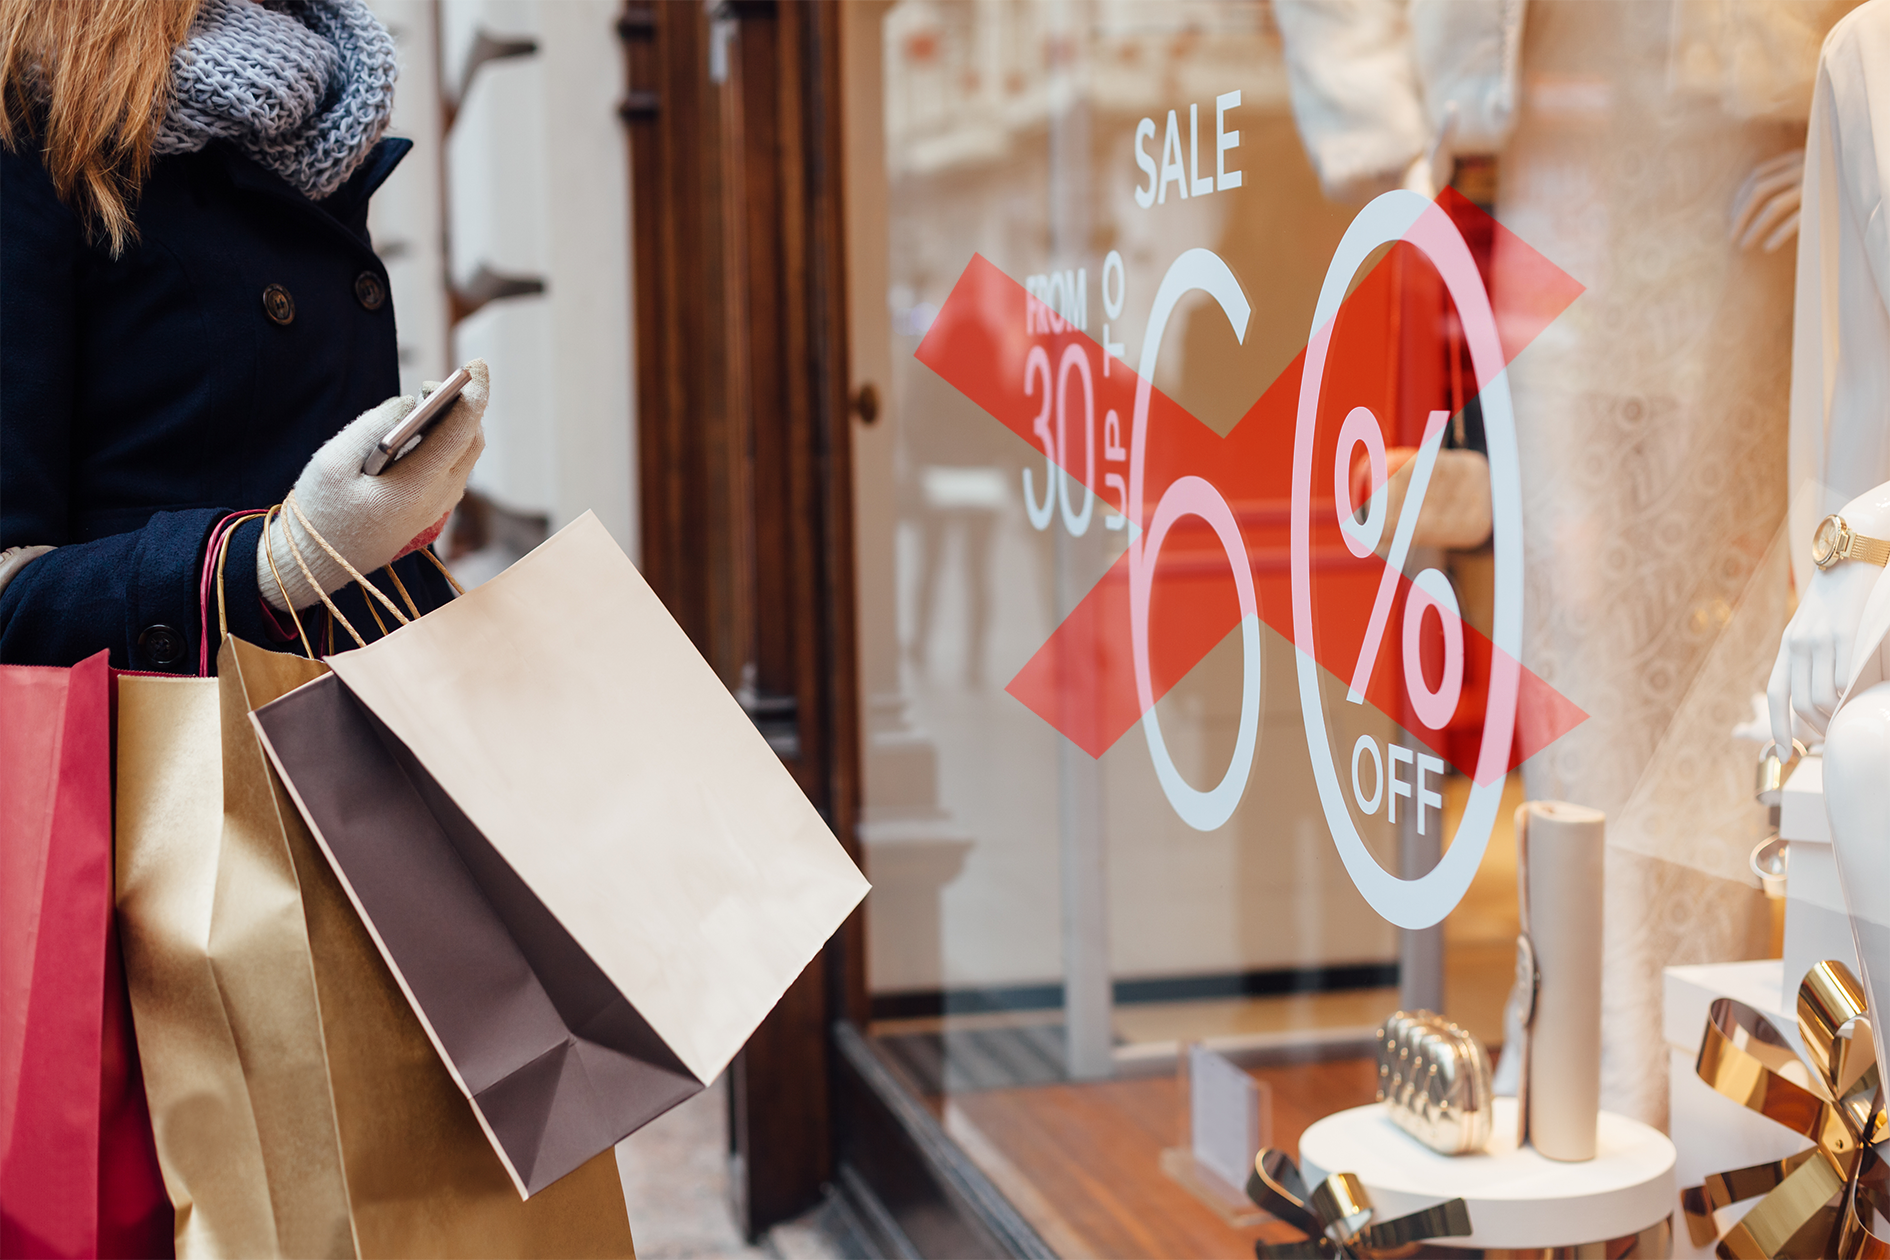 Learn how demand-driven replenishment helps fashion retailers increase full-price sales and higher profit margins